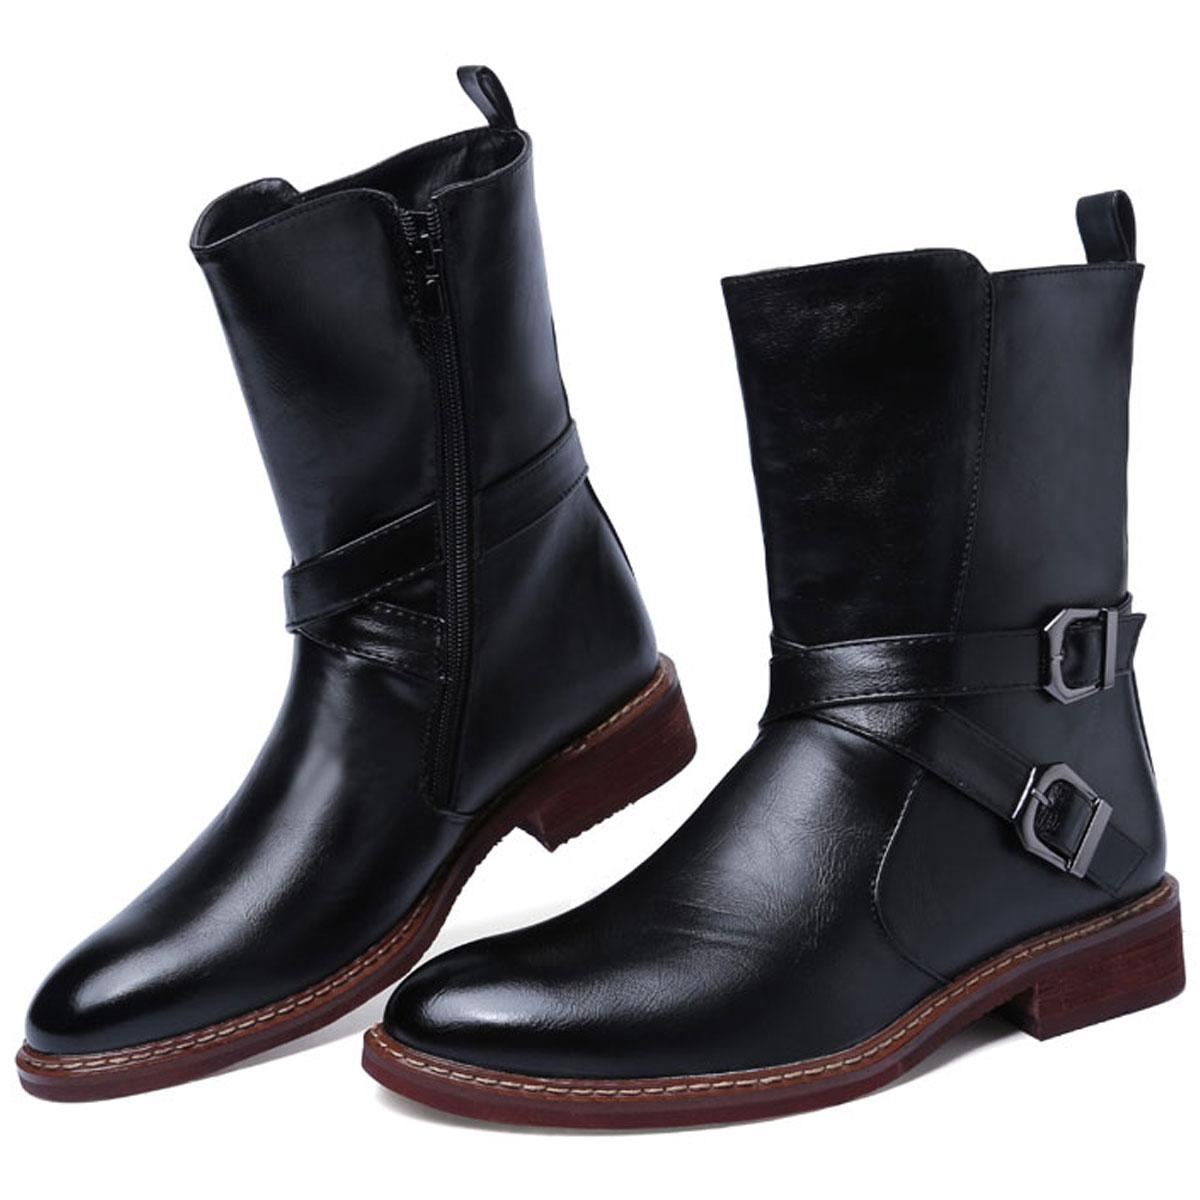 Western Stylish Roman Equestrian Ankle Boots Mens Quality Leather ...